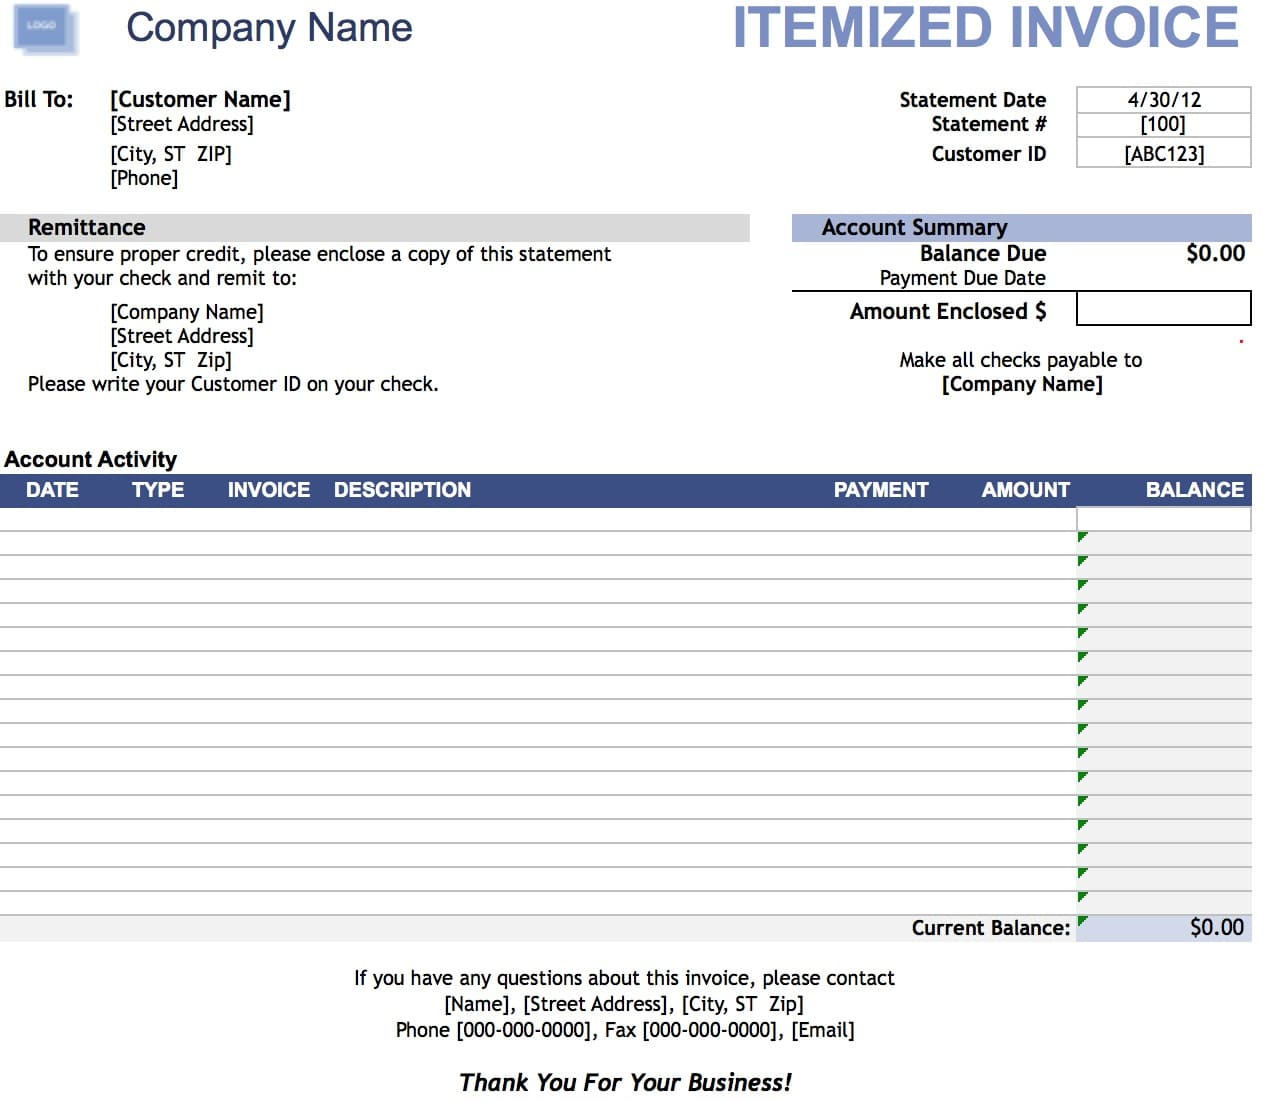 Free Itemized Invoice Template Excel PDF Word Doc - How to create an invoice in word for service business